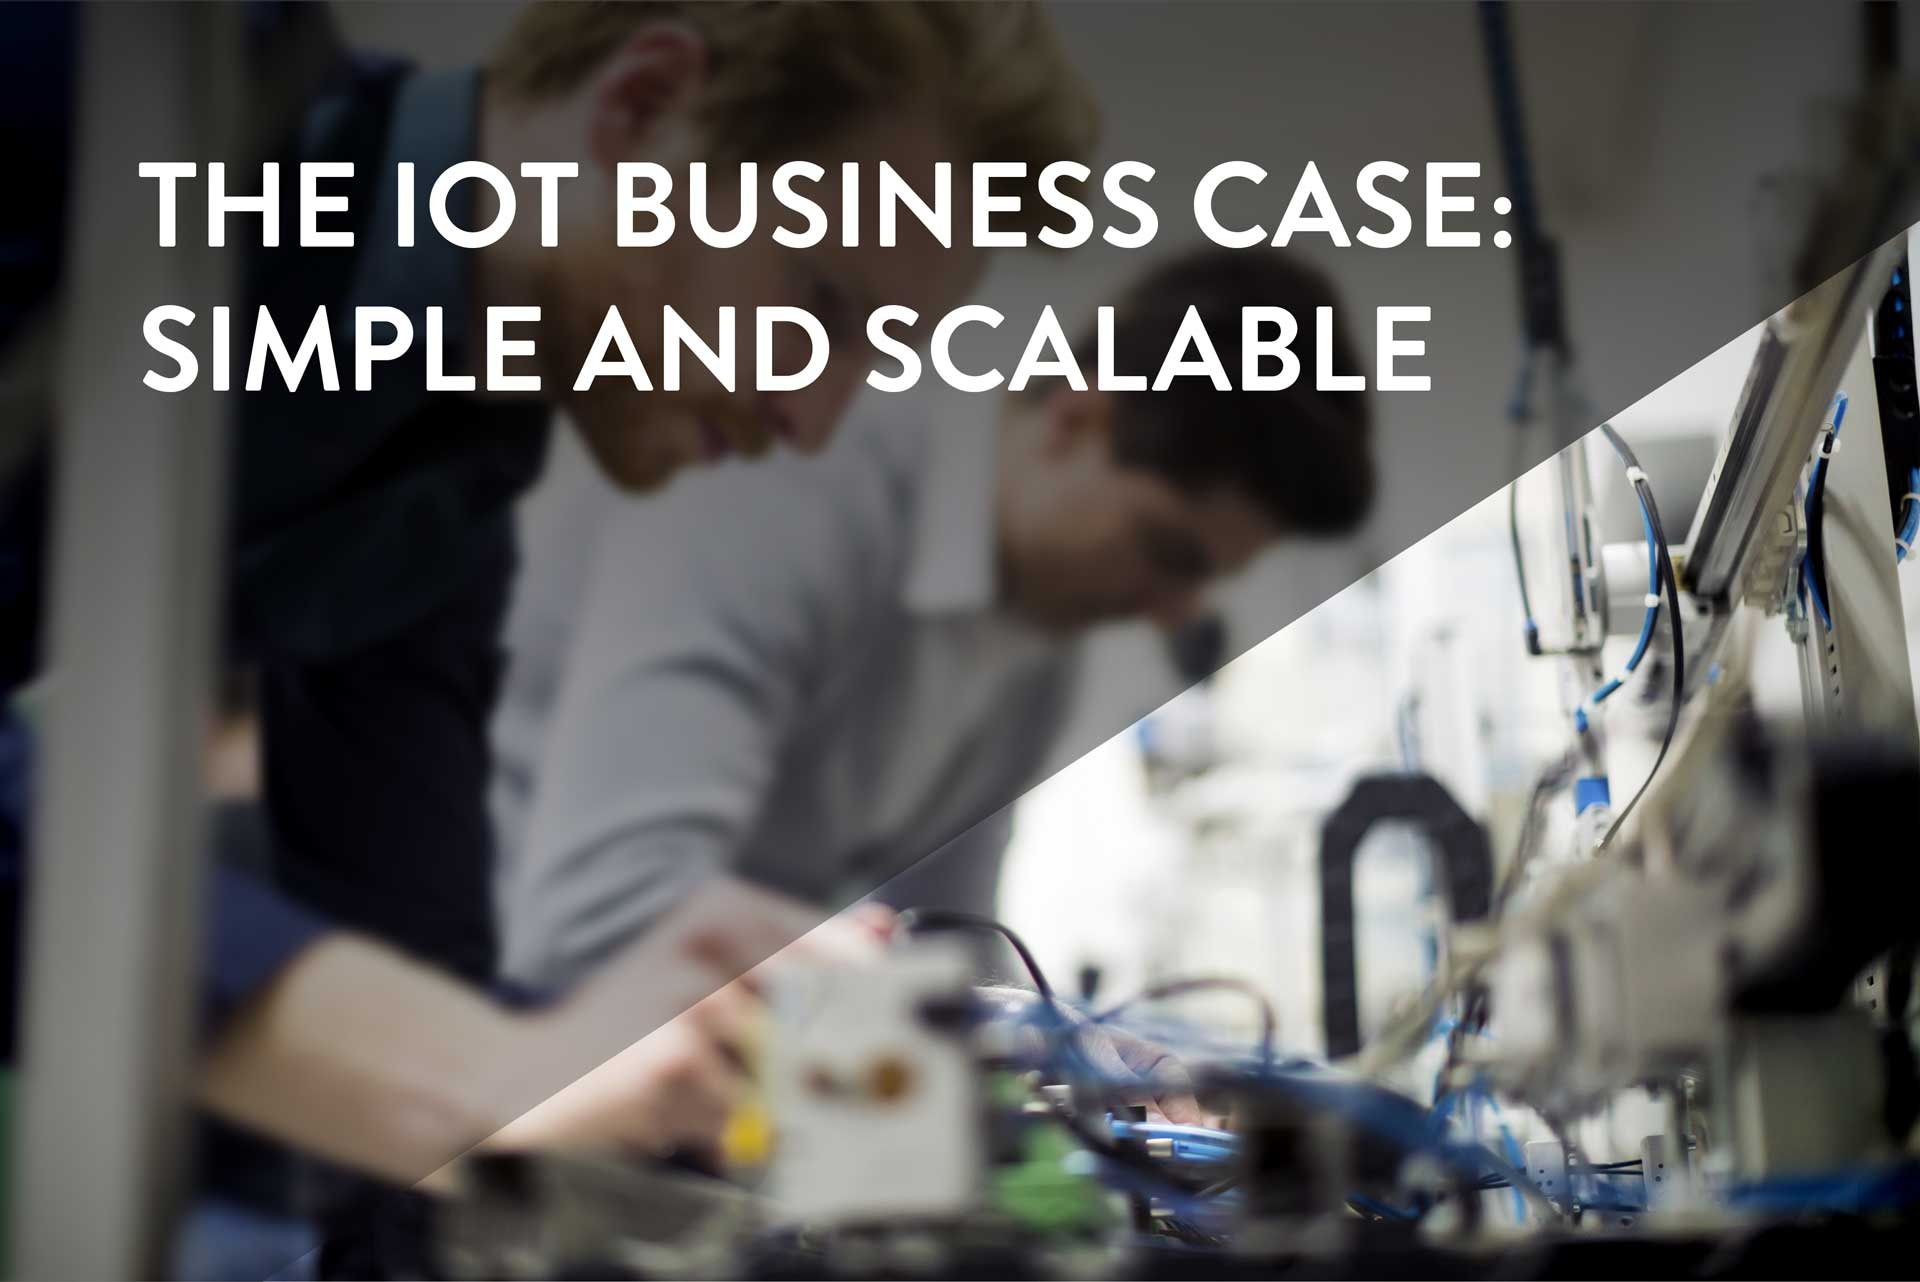 The IoT Business Case: Simple and Scalable